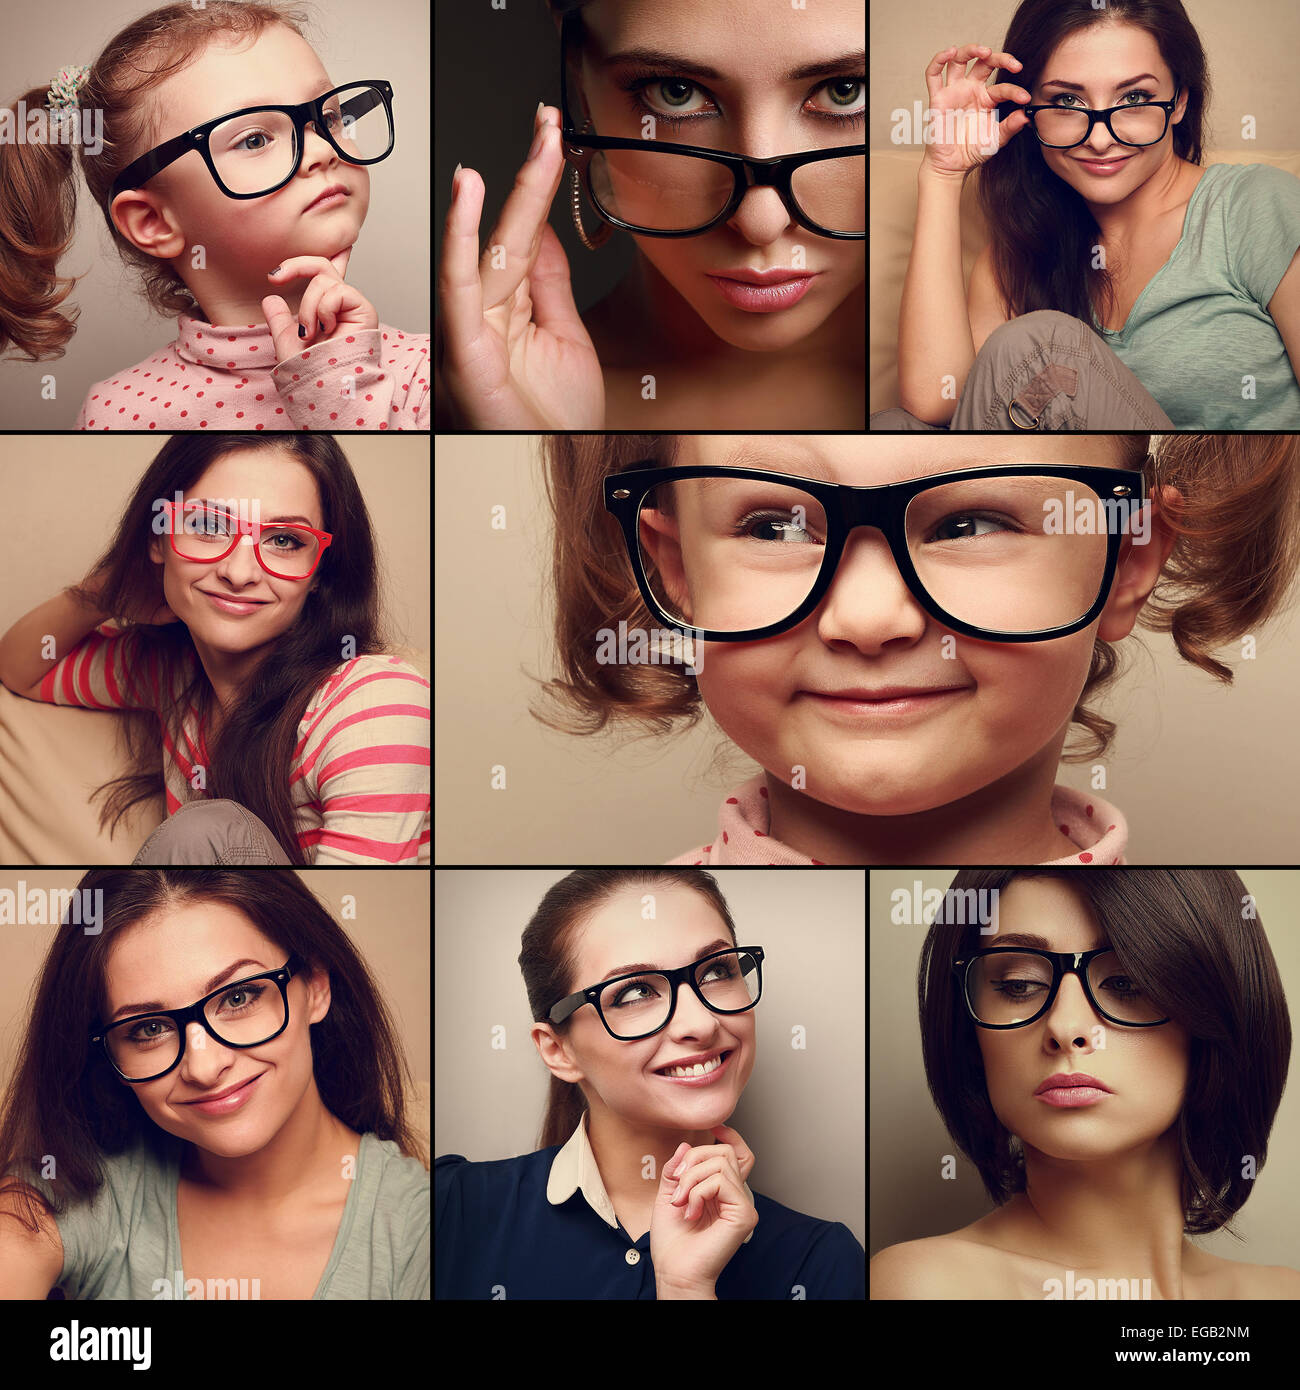 Happy smiling portrait collage collection from people in glasses looking. Fashion style of woman and kid on different - Stock Image